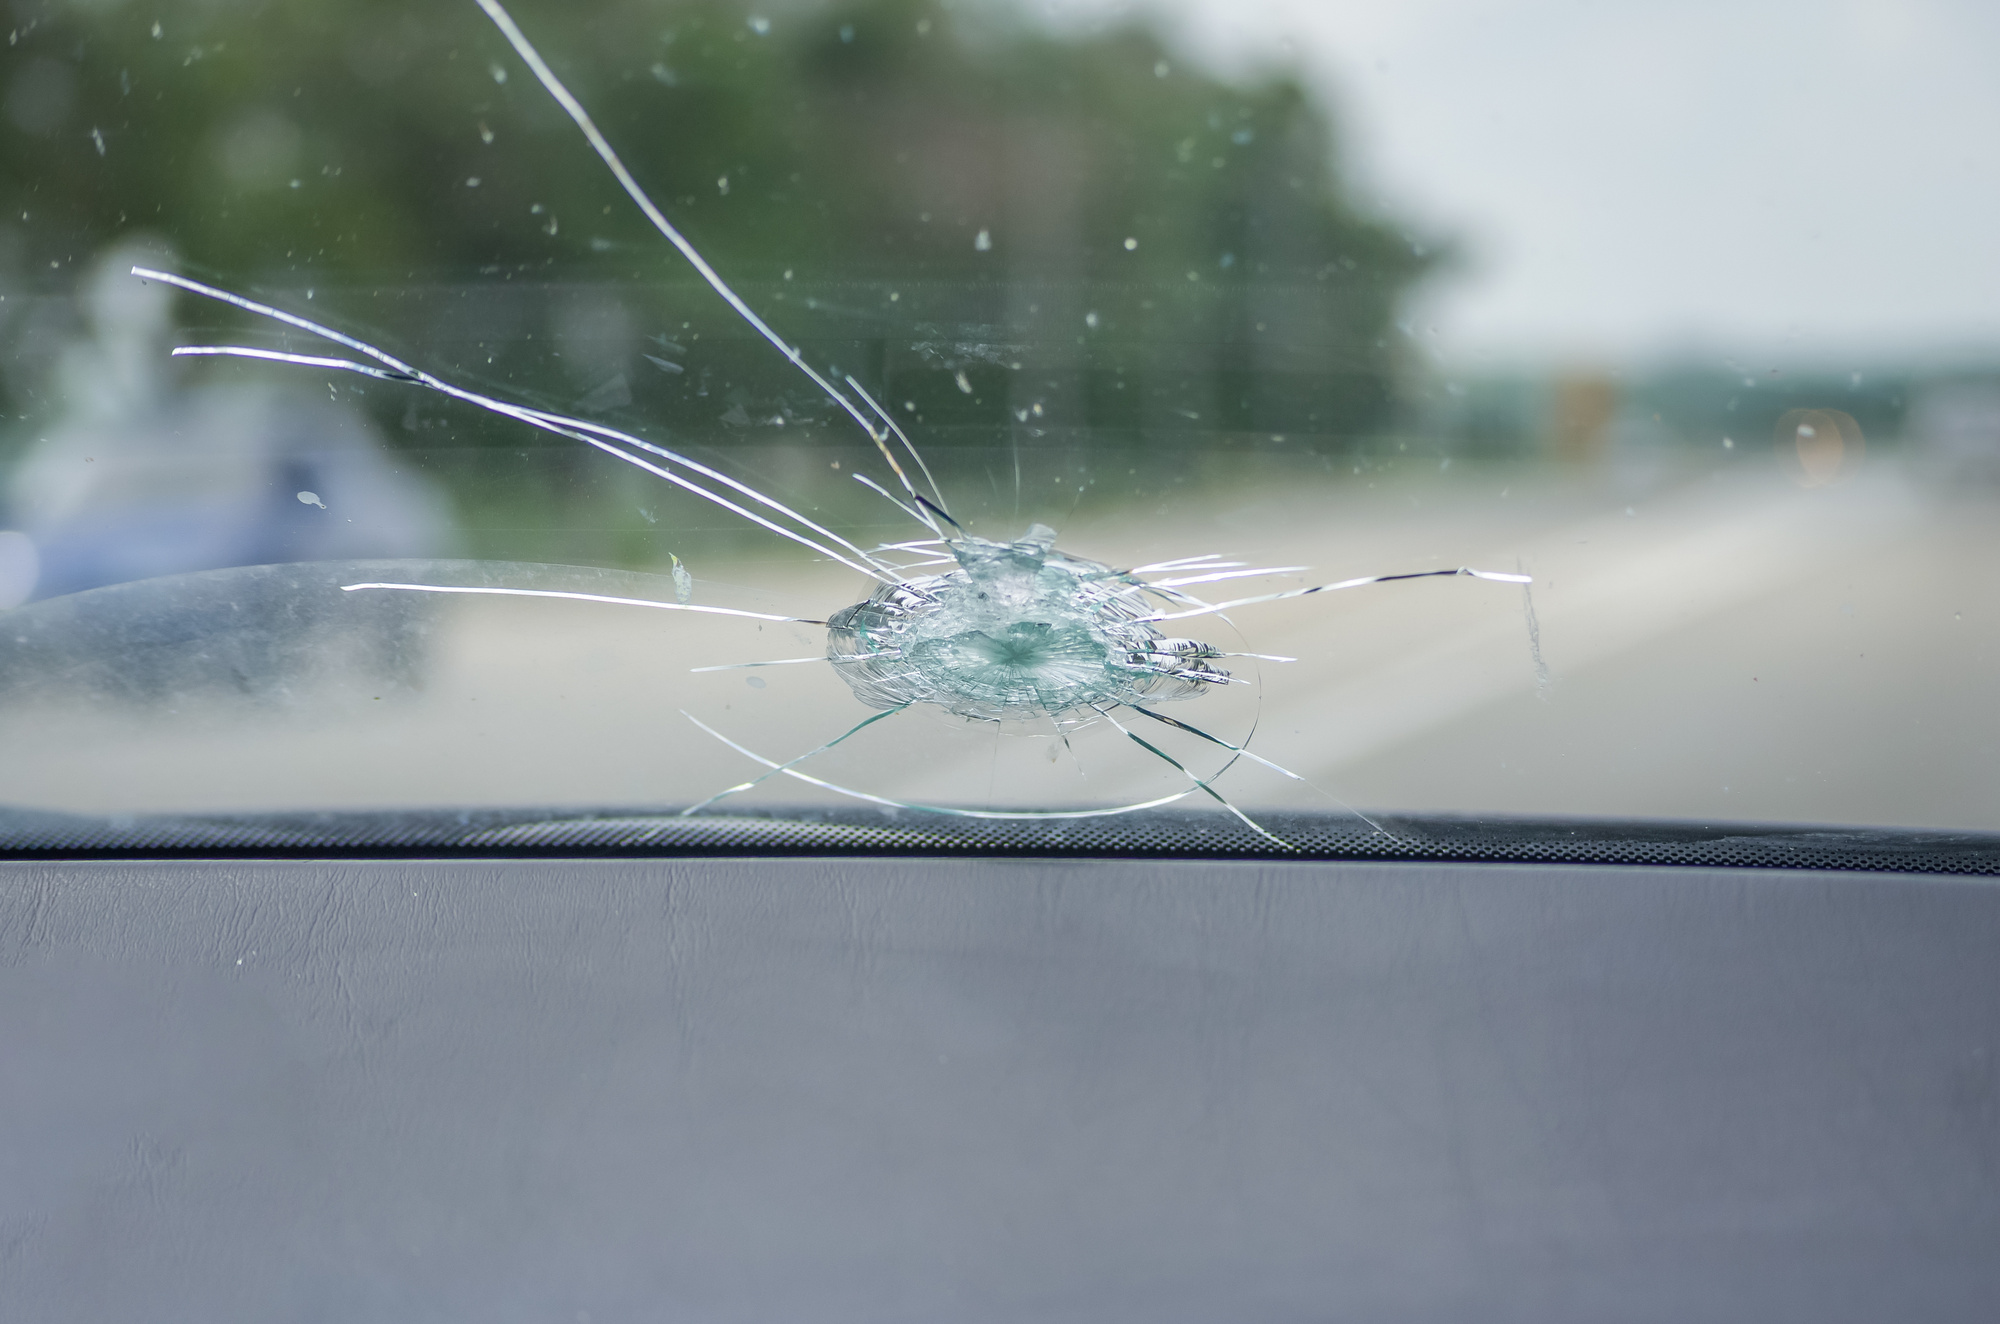 Cracked Windshield on a Car